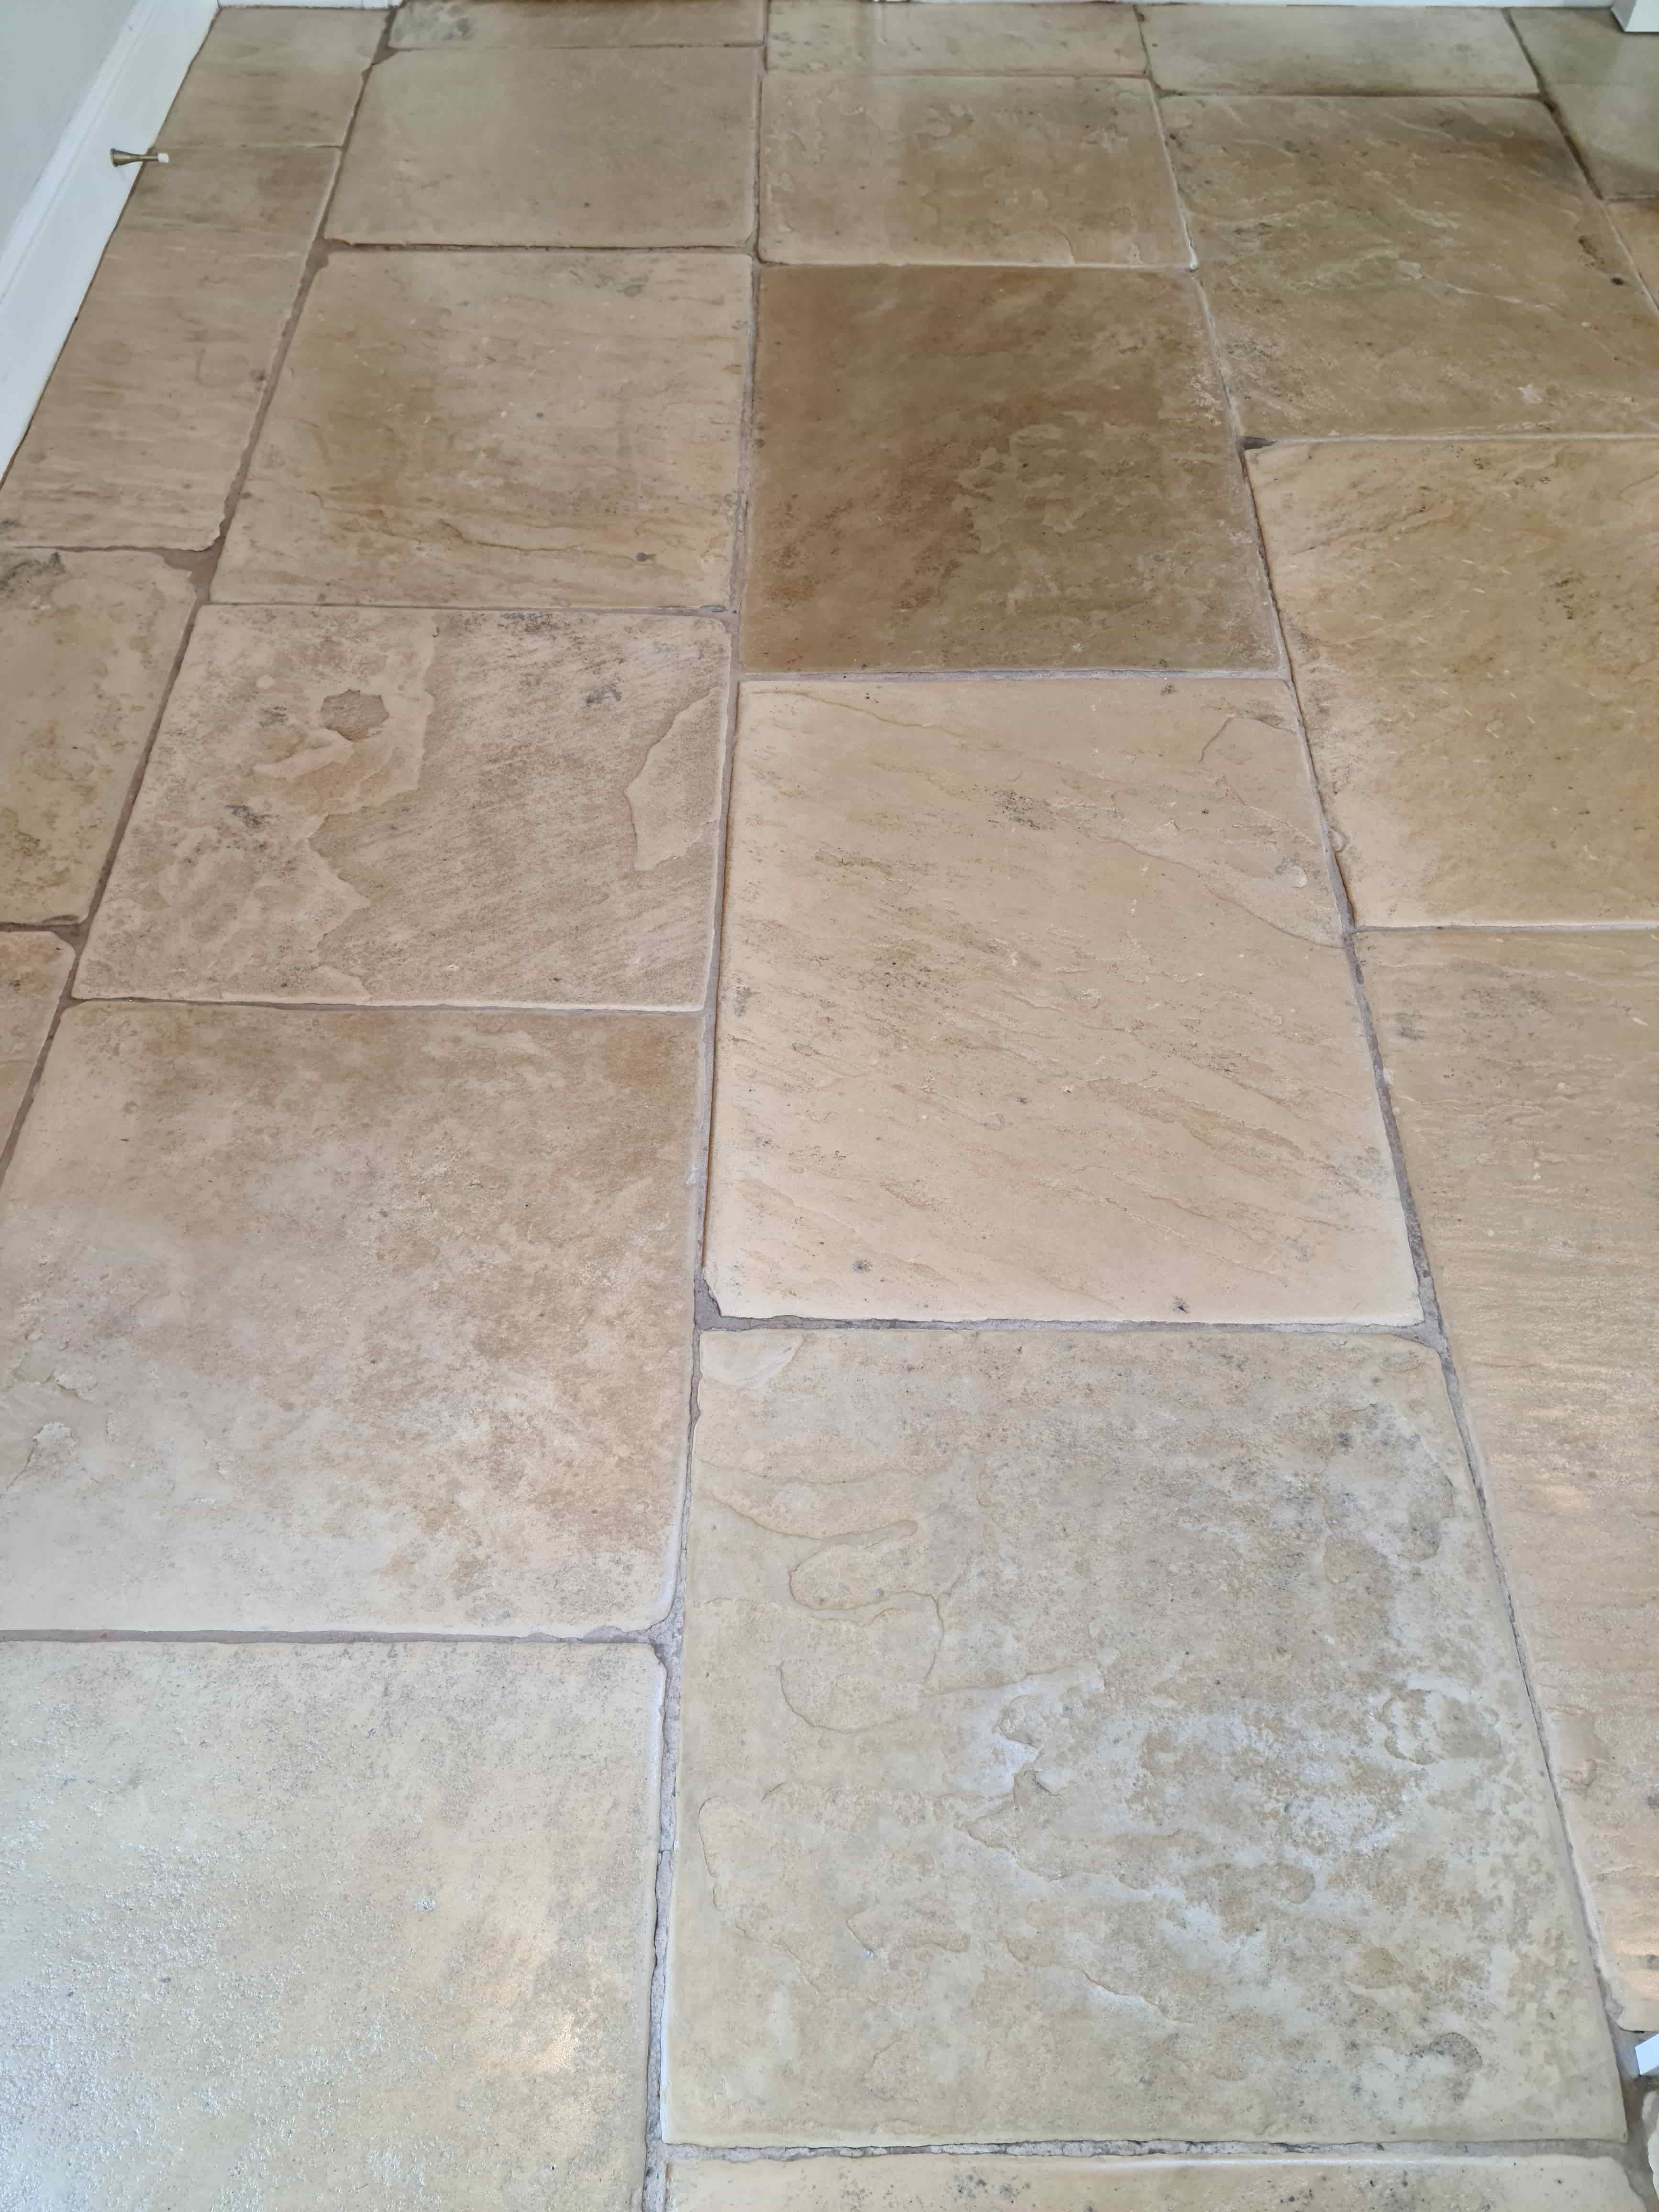 Lapicida Sandstone Floor After Cleaning Ilkley